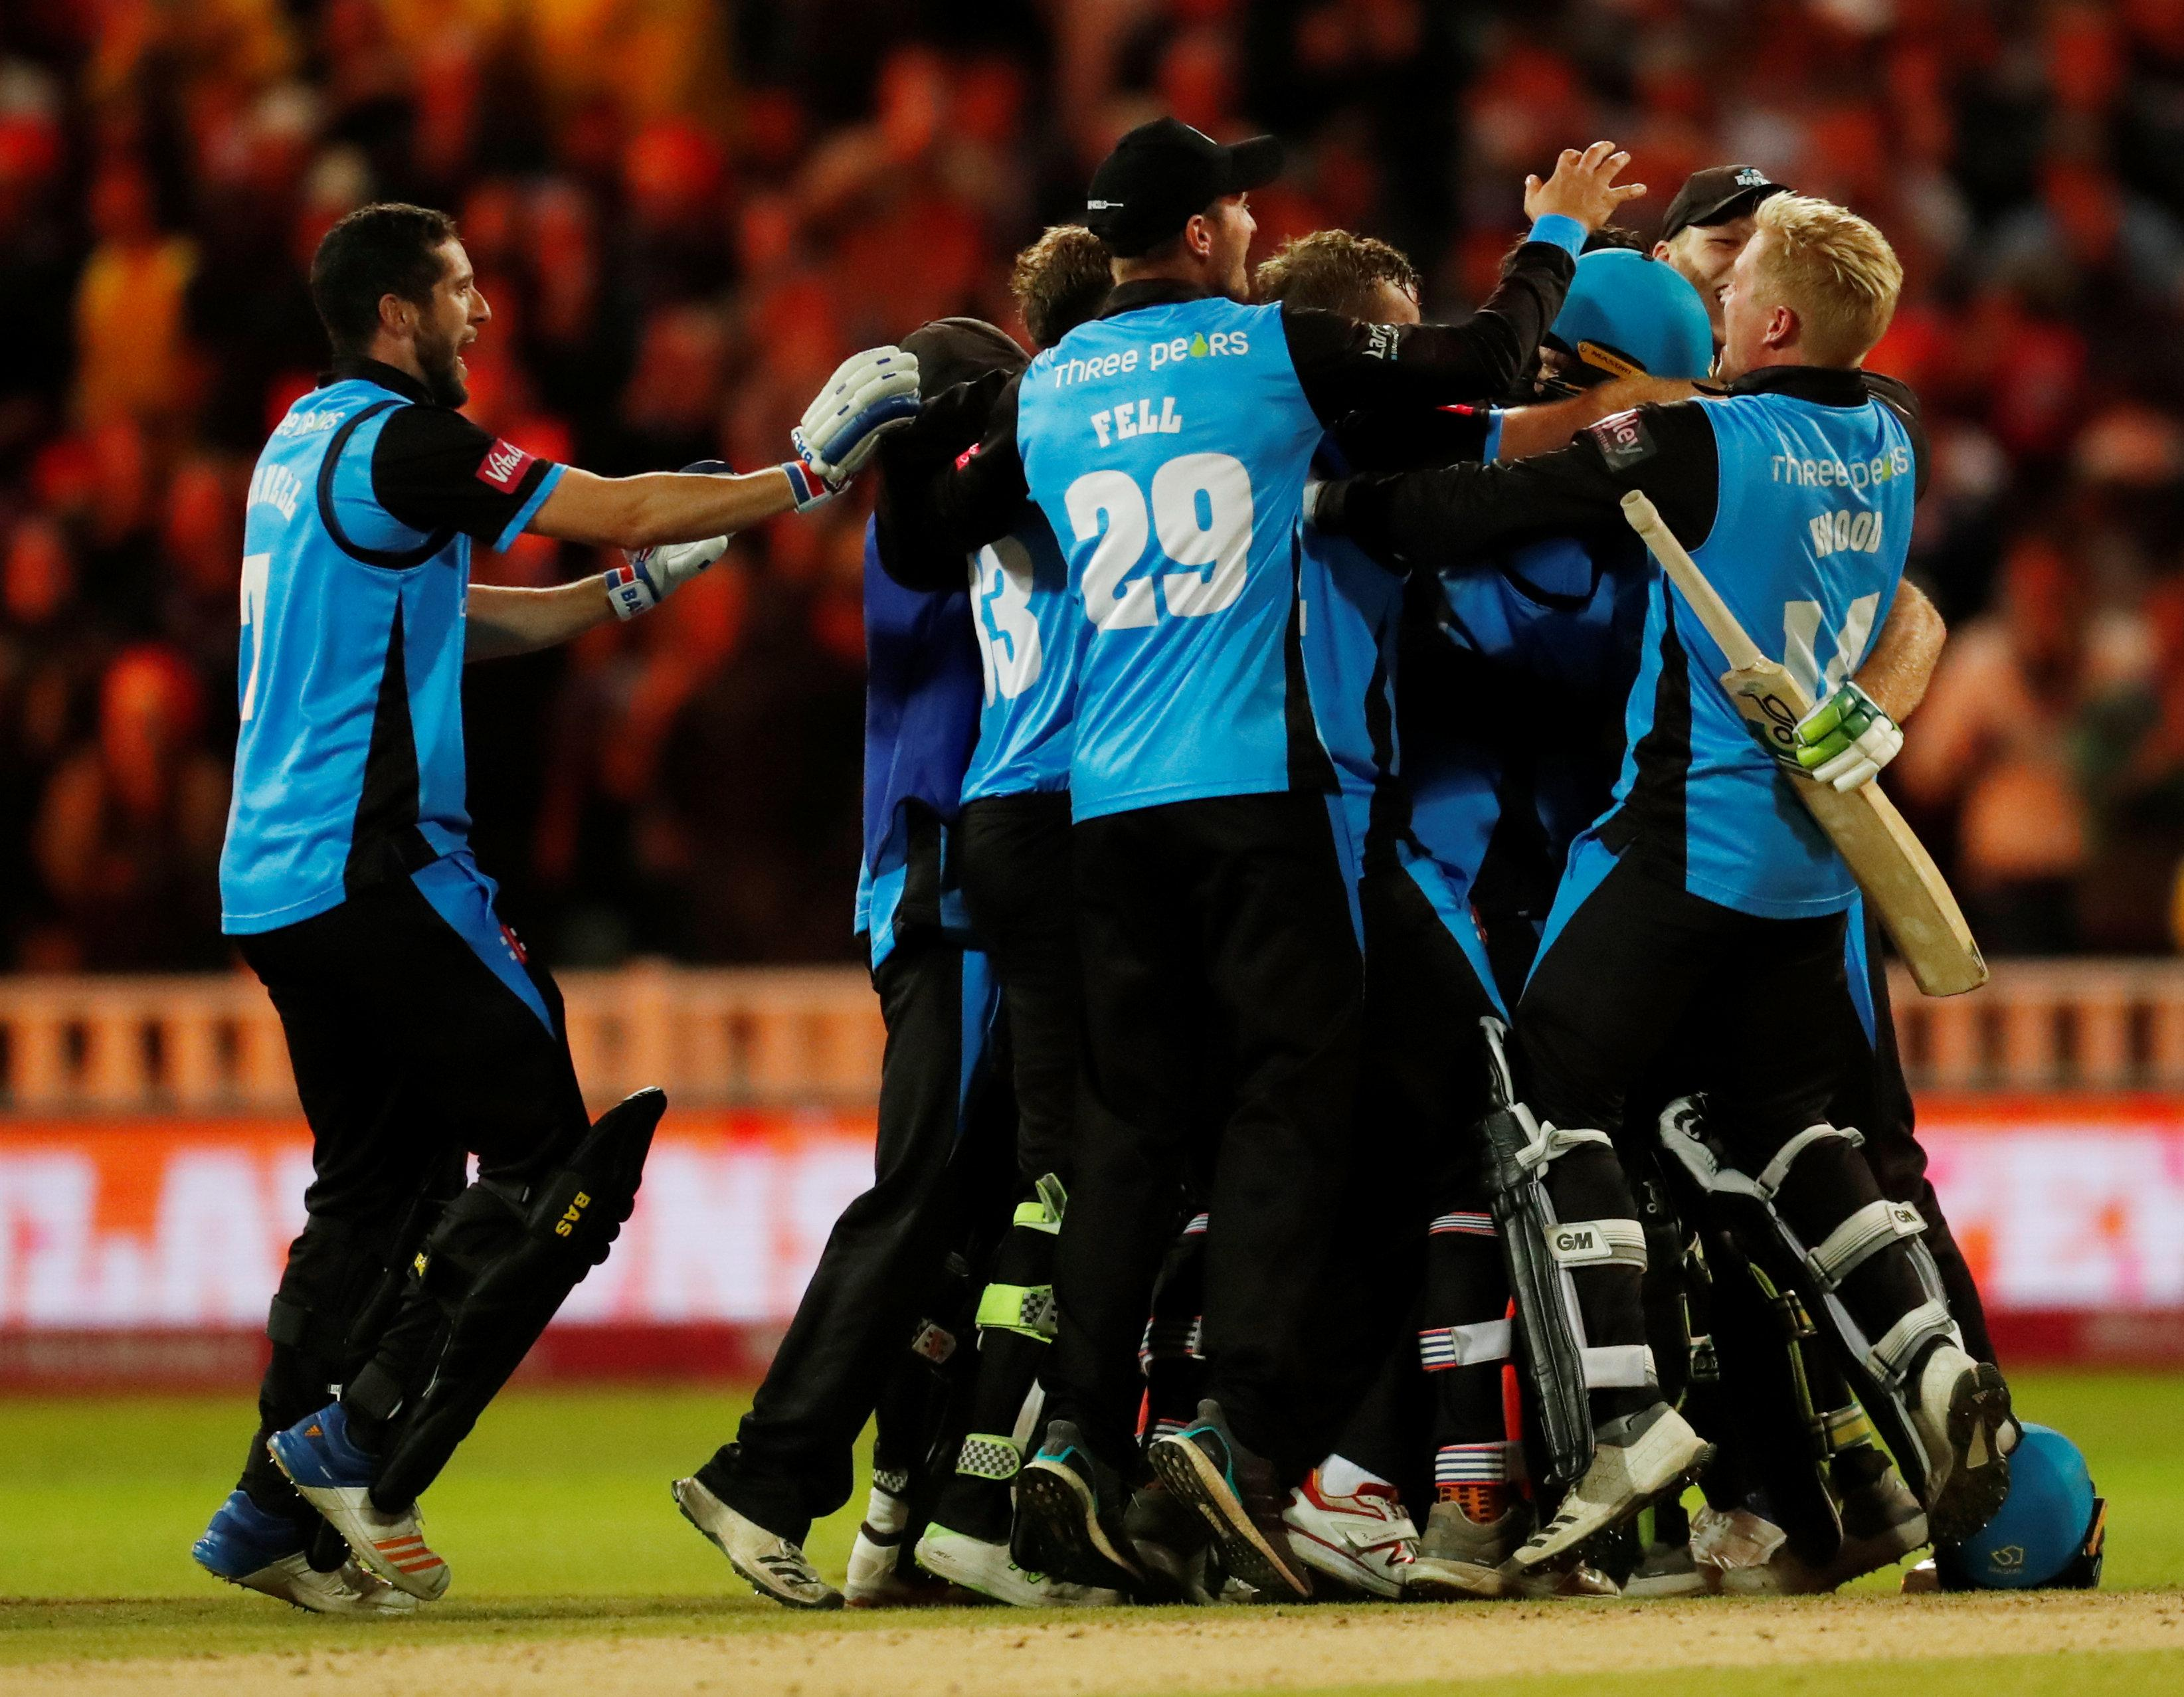 Worcestershire celebrate after beating Sussex at Edgbaston